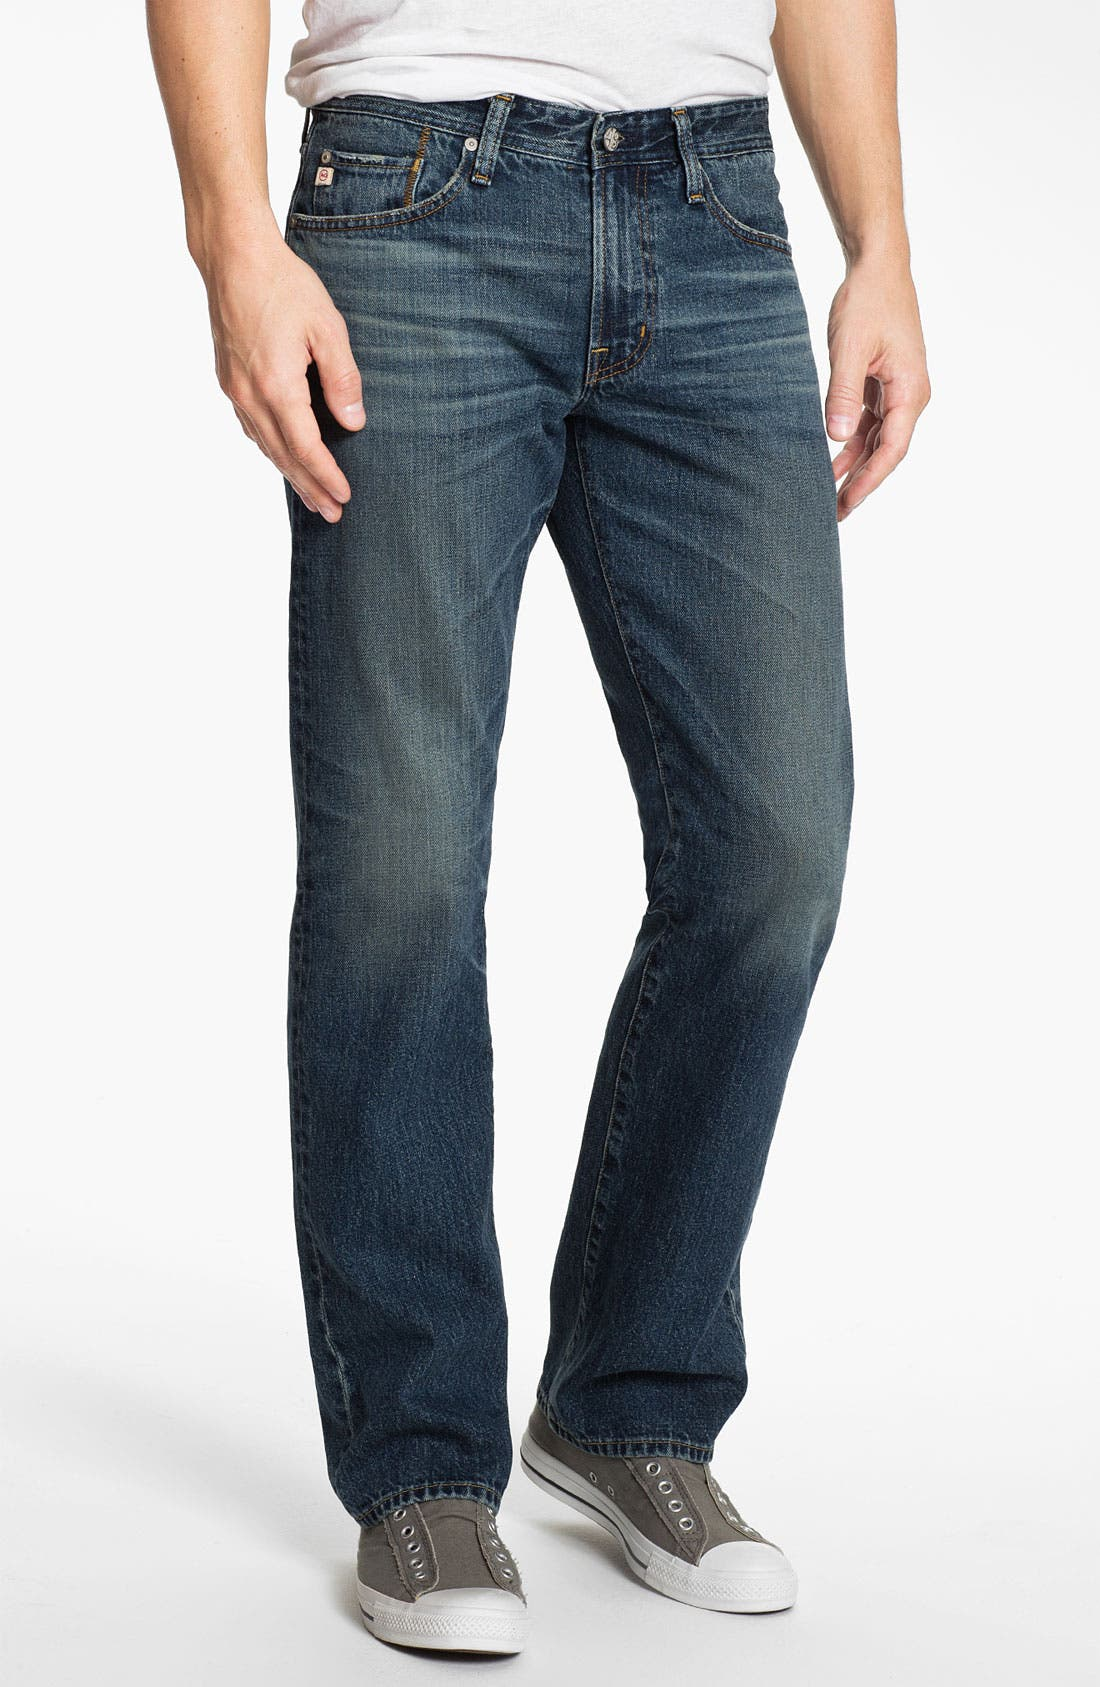 Alternate Image 1 Selected - AG Jeans 'Protégé' Straight Leg Jeans (12-Years Original)